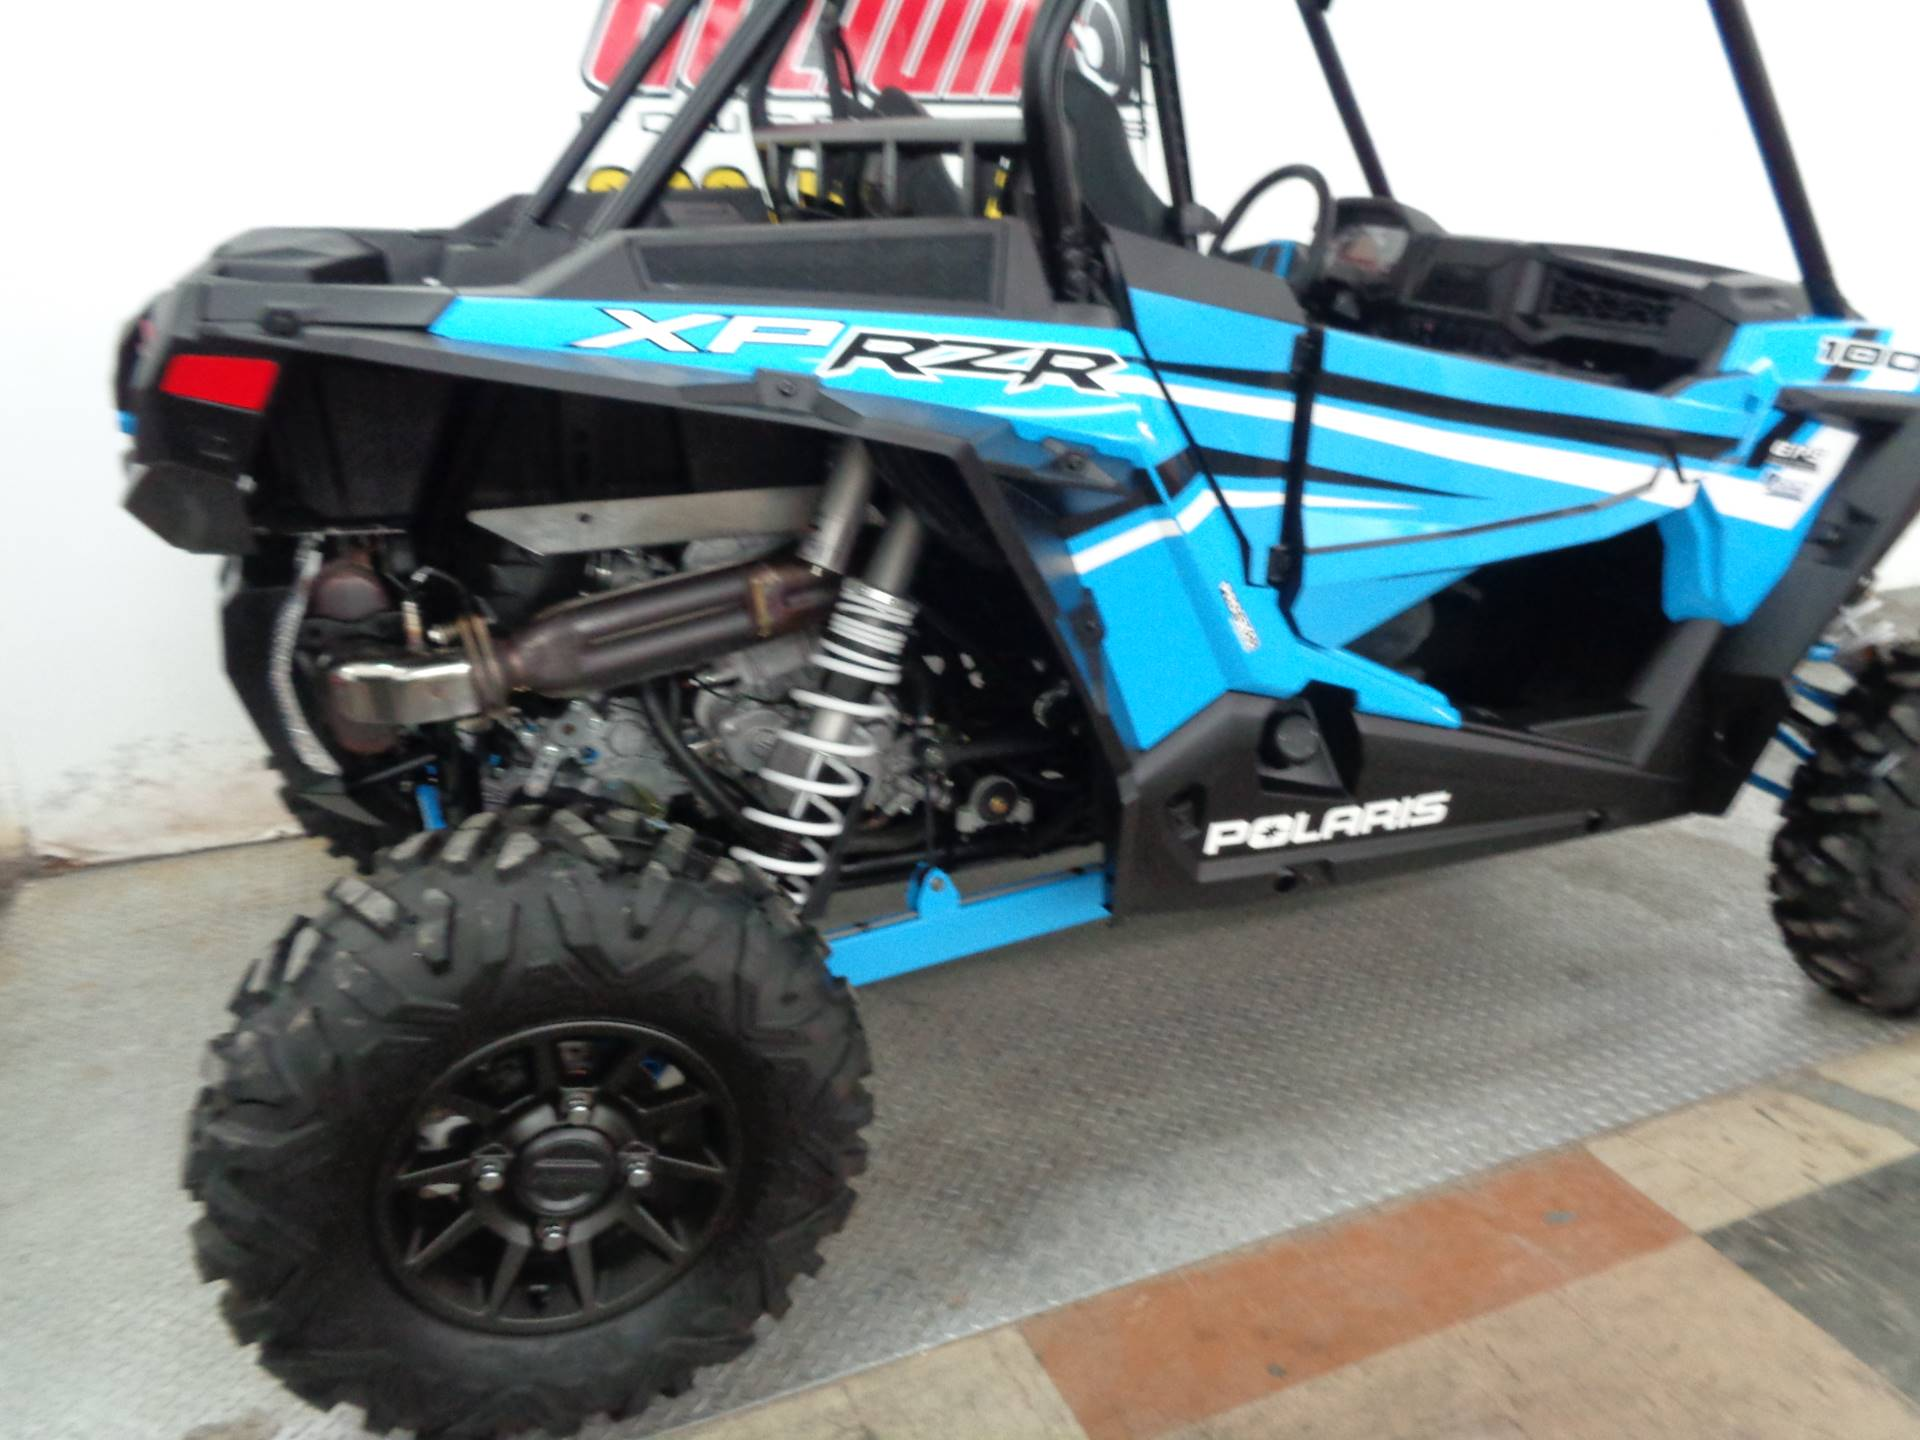 2019 Polaris RZR XP 1000 in Tulsa, Oklahoma - Photo 6